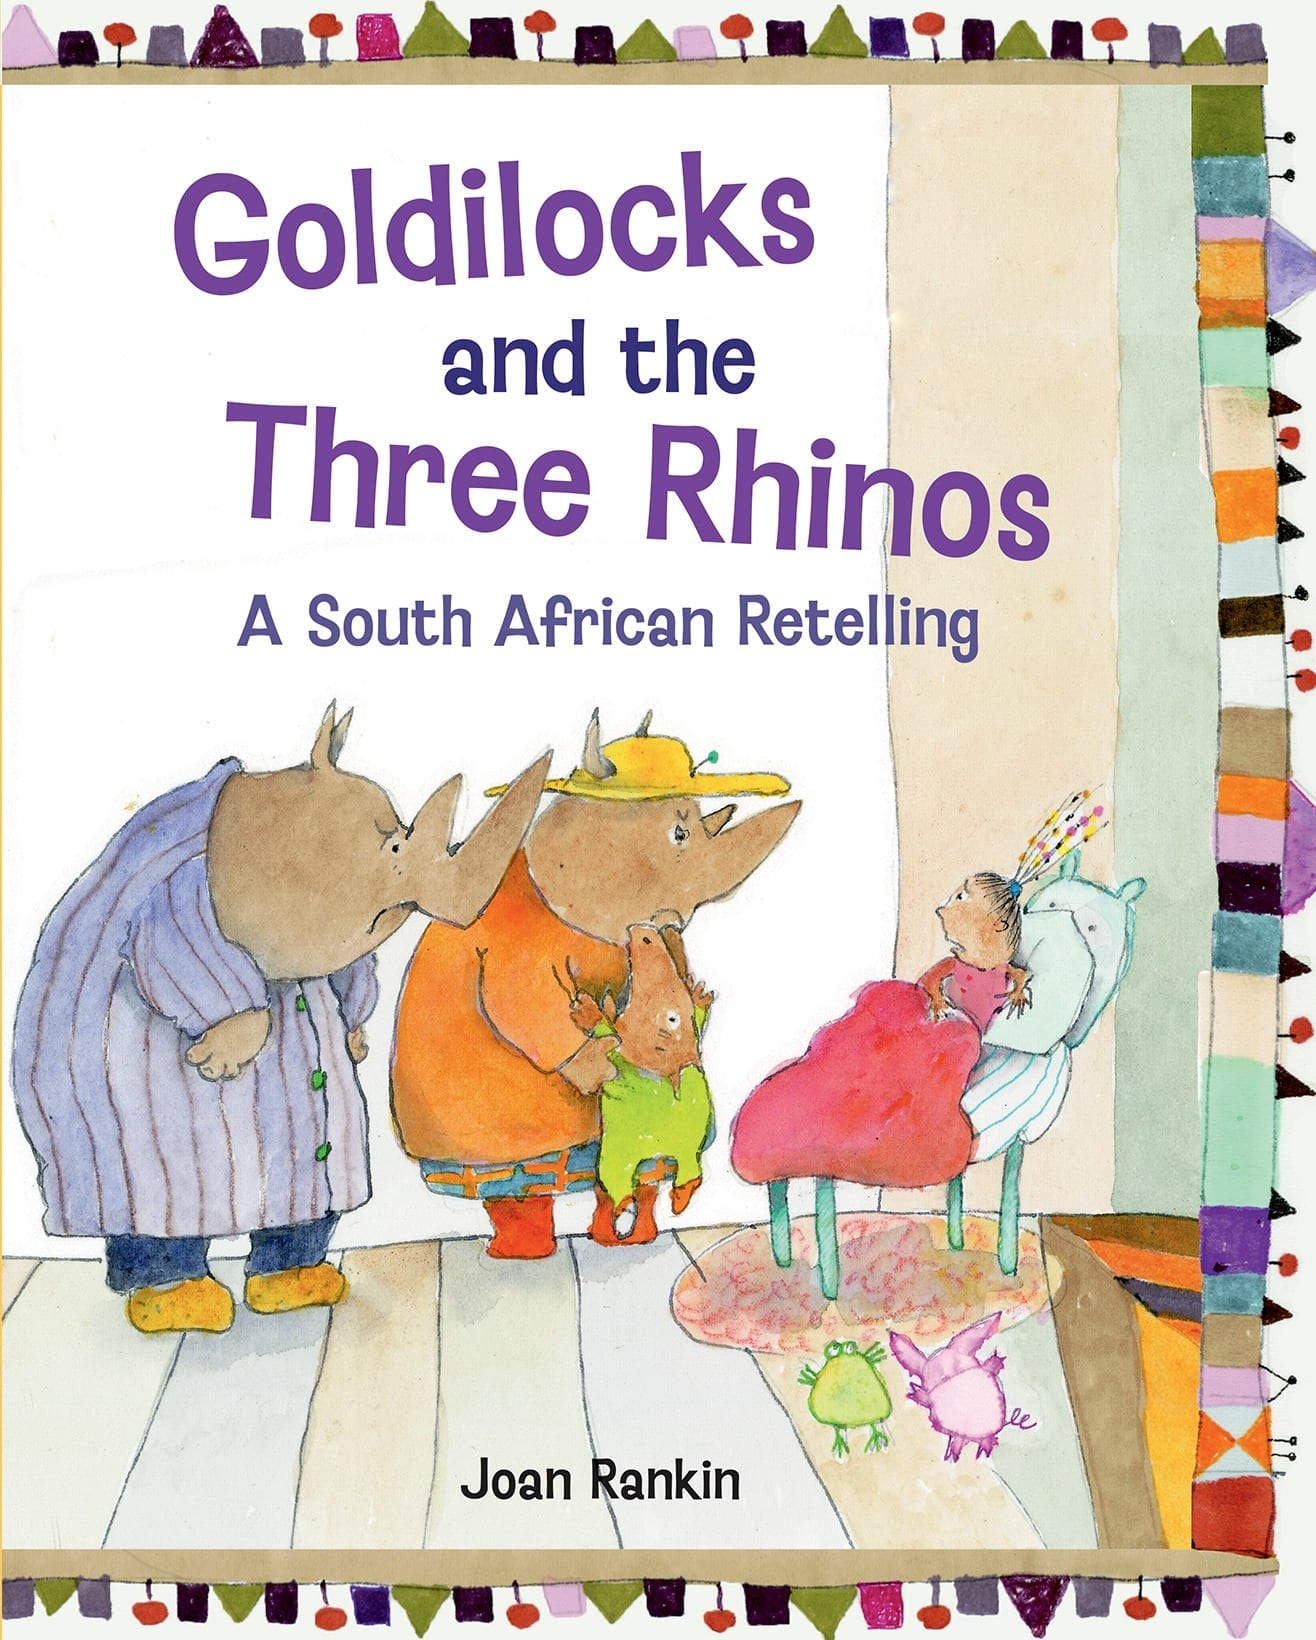 Goldilocks and the Three Rhinos